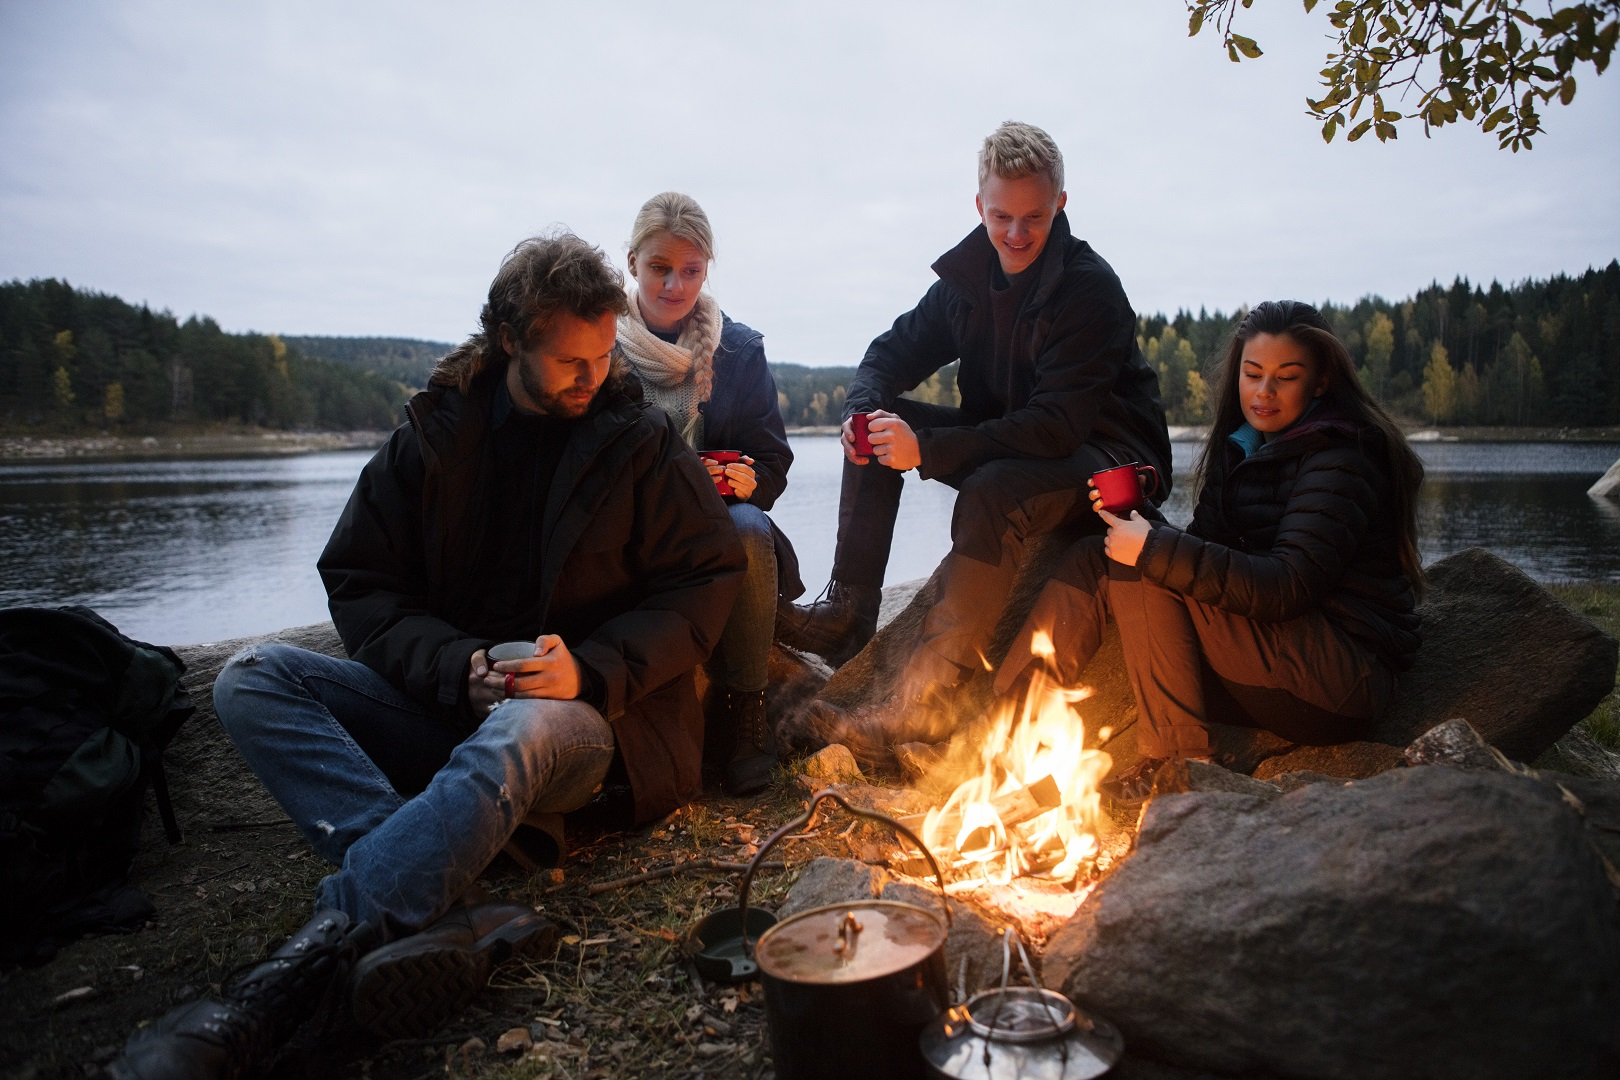 Multiethnic friends with coffee cups sitting near campfire on lakeshore